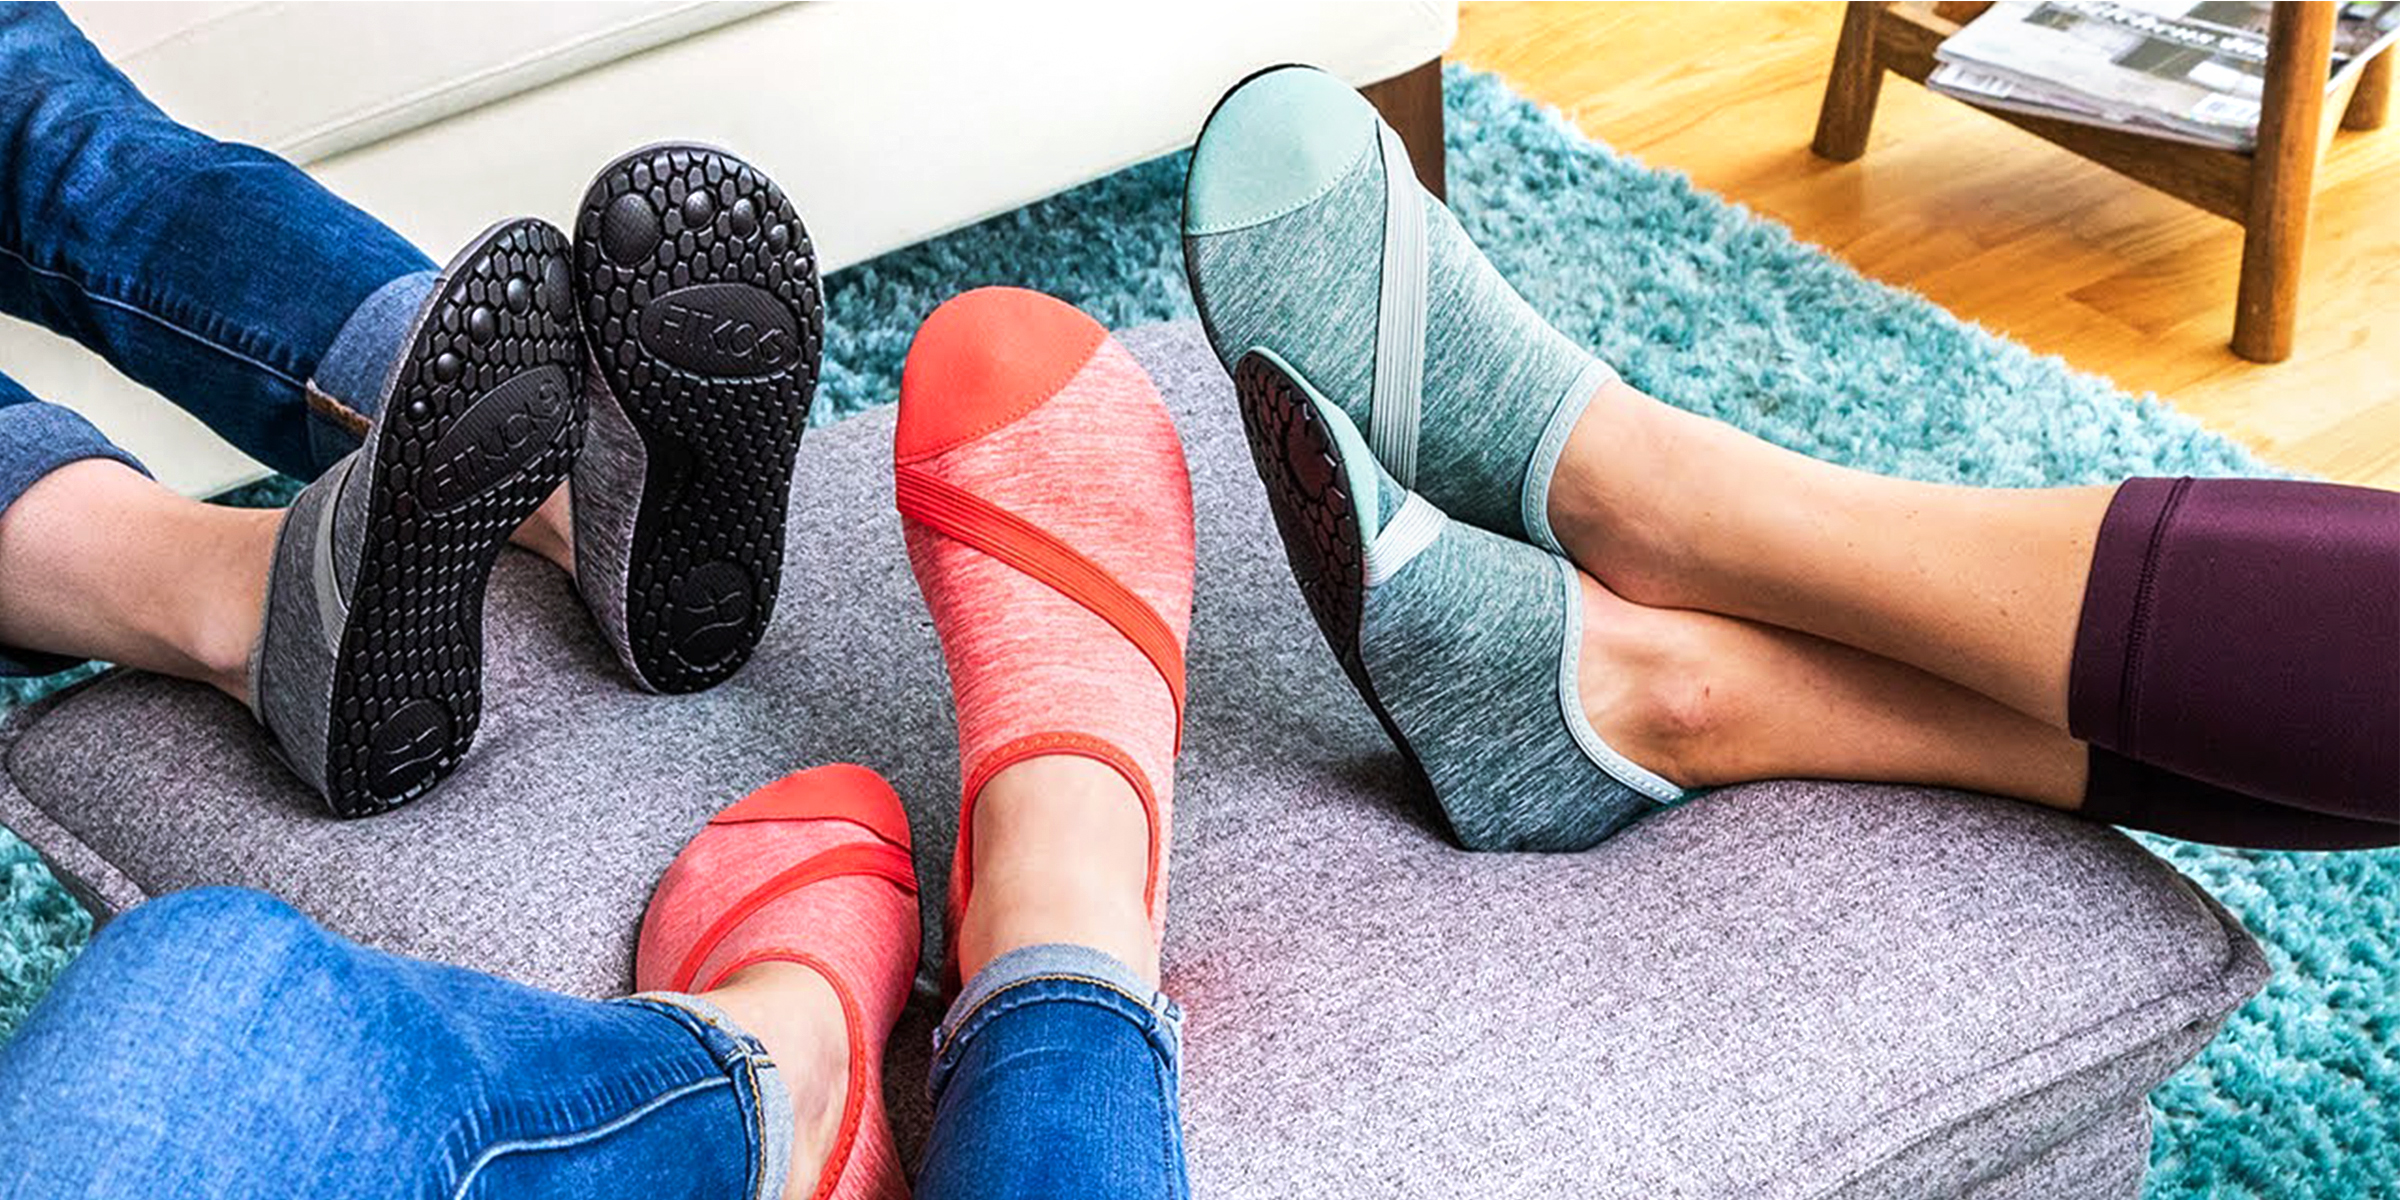 These sock-shoes are perfect for